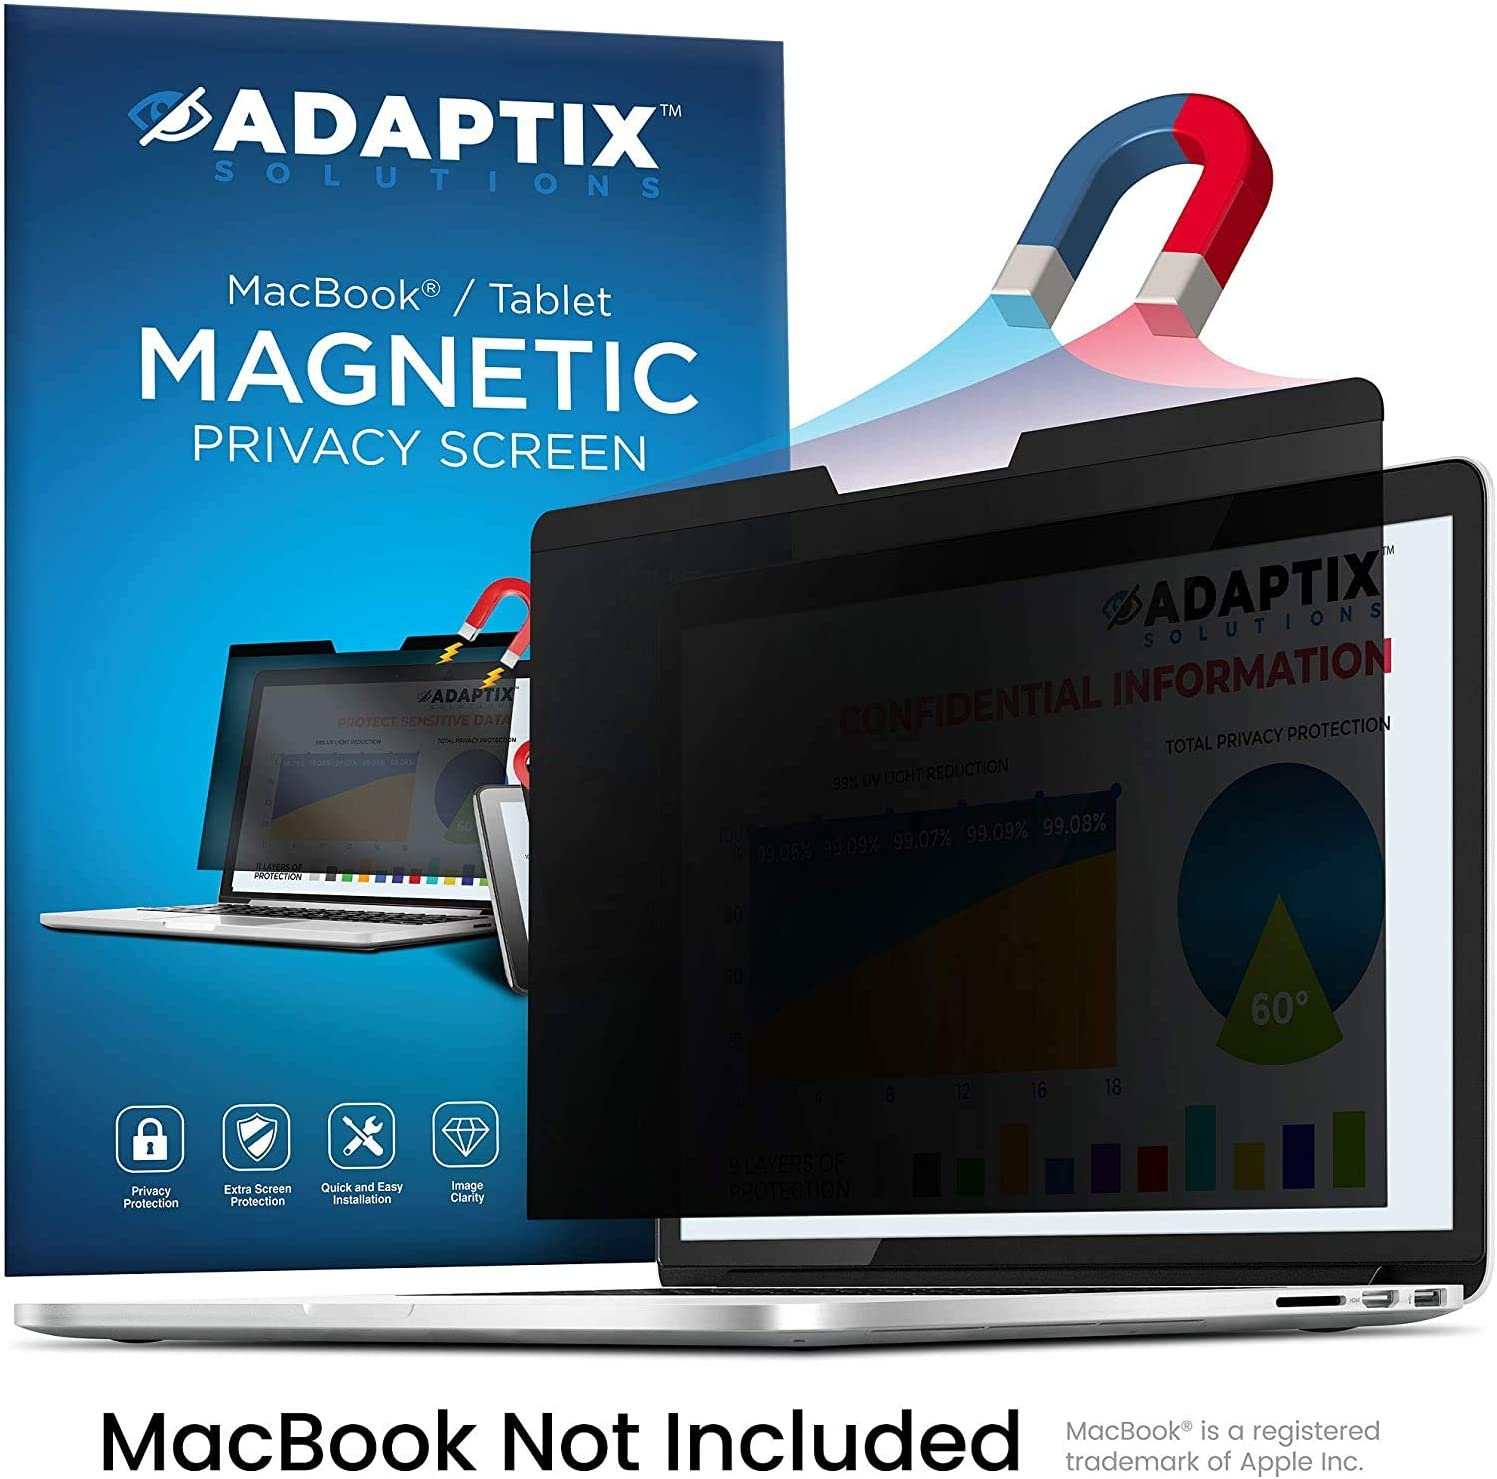 Adaptix Magnetic Privacy Screen for 13 Inch MacBook Pro [2016, 2017, 2018, 2019, 2020] – Anti-Glare, Laptop Privacy Filter – Blue Light Protector - Fits MacBook Air [2018, 2019, 2020] (AMSMR13-TB)